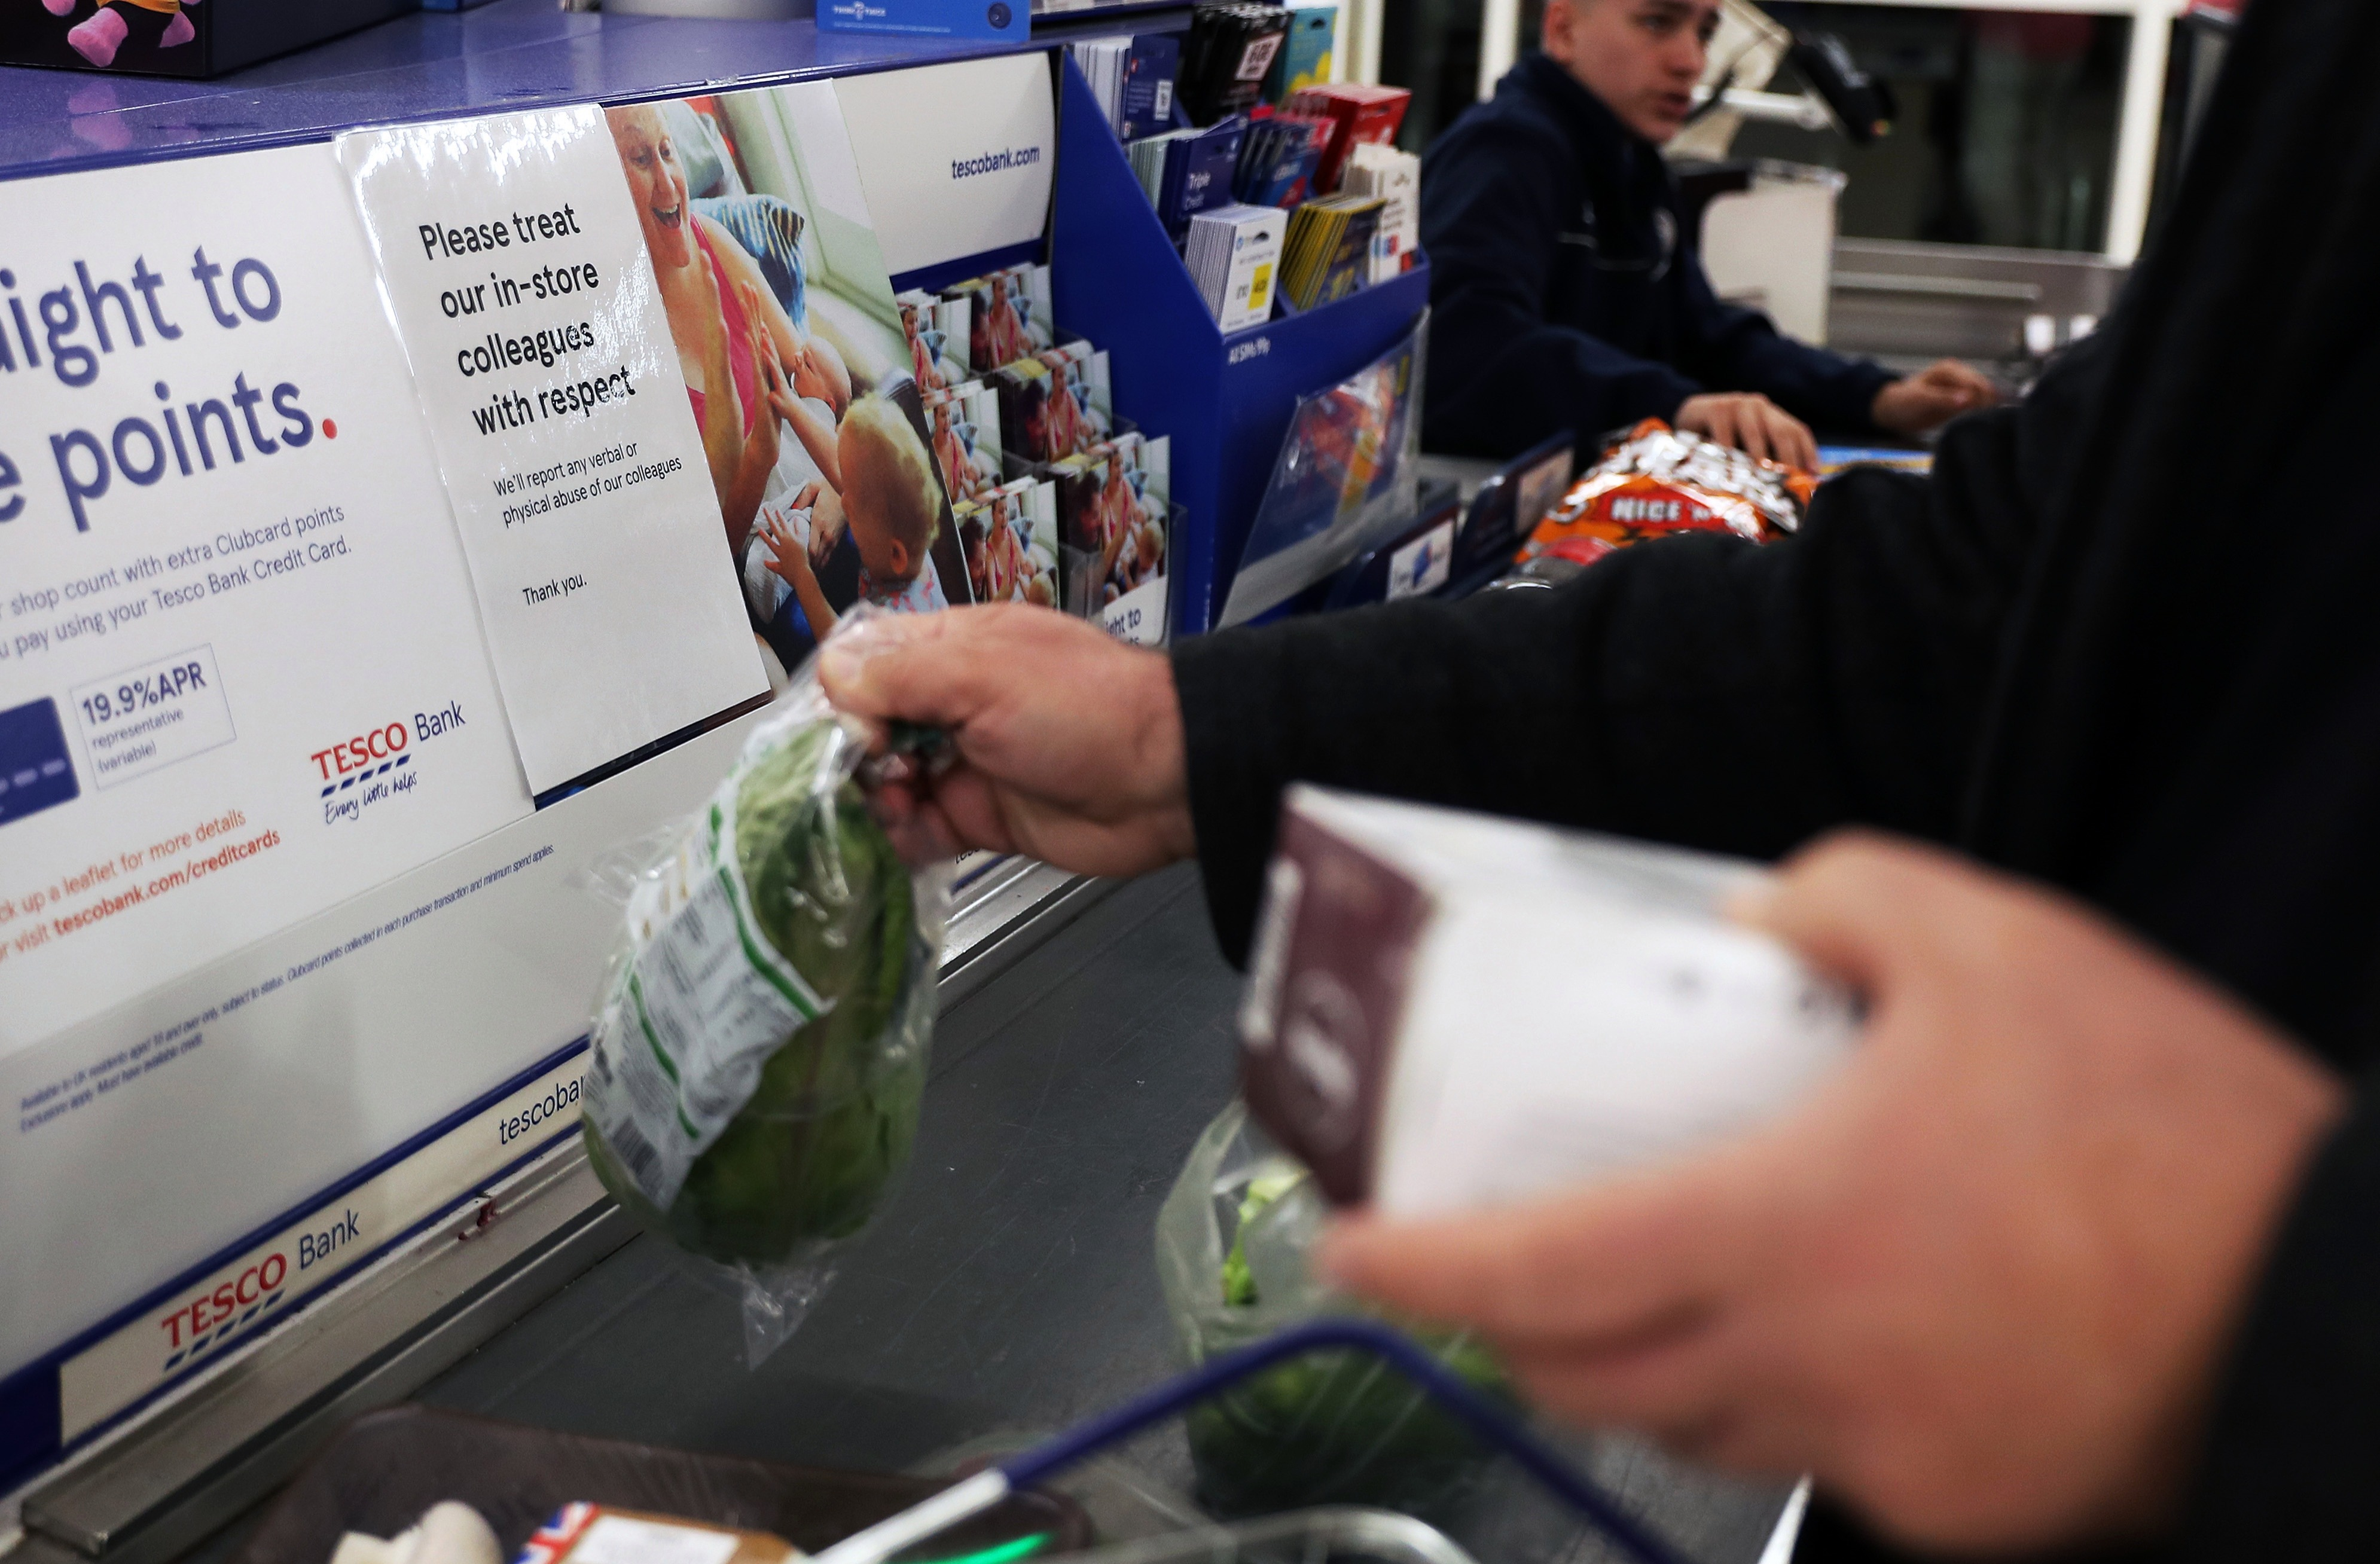 The error happened when customers were paying for their shopping in store at the checkout